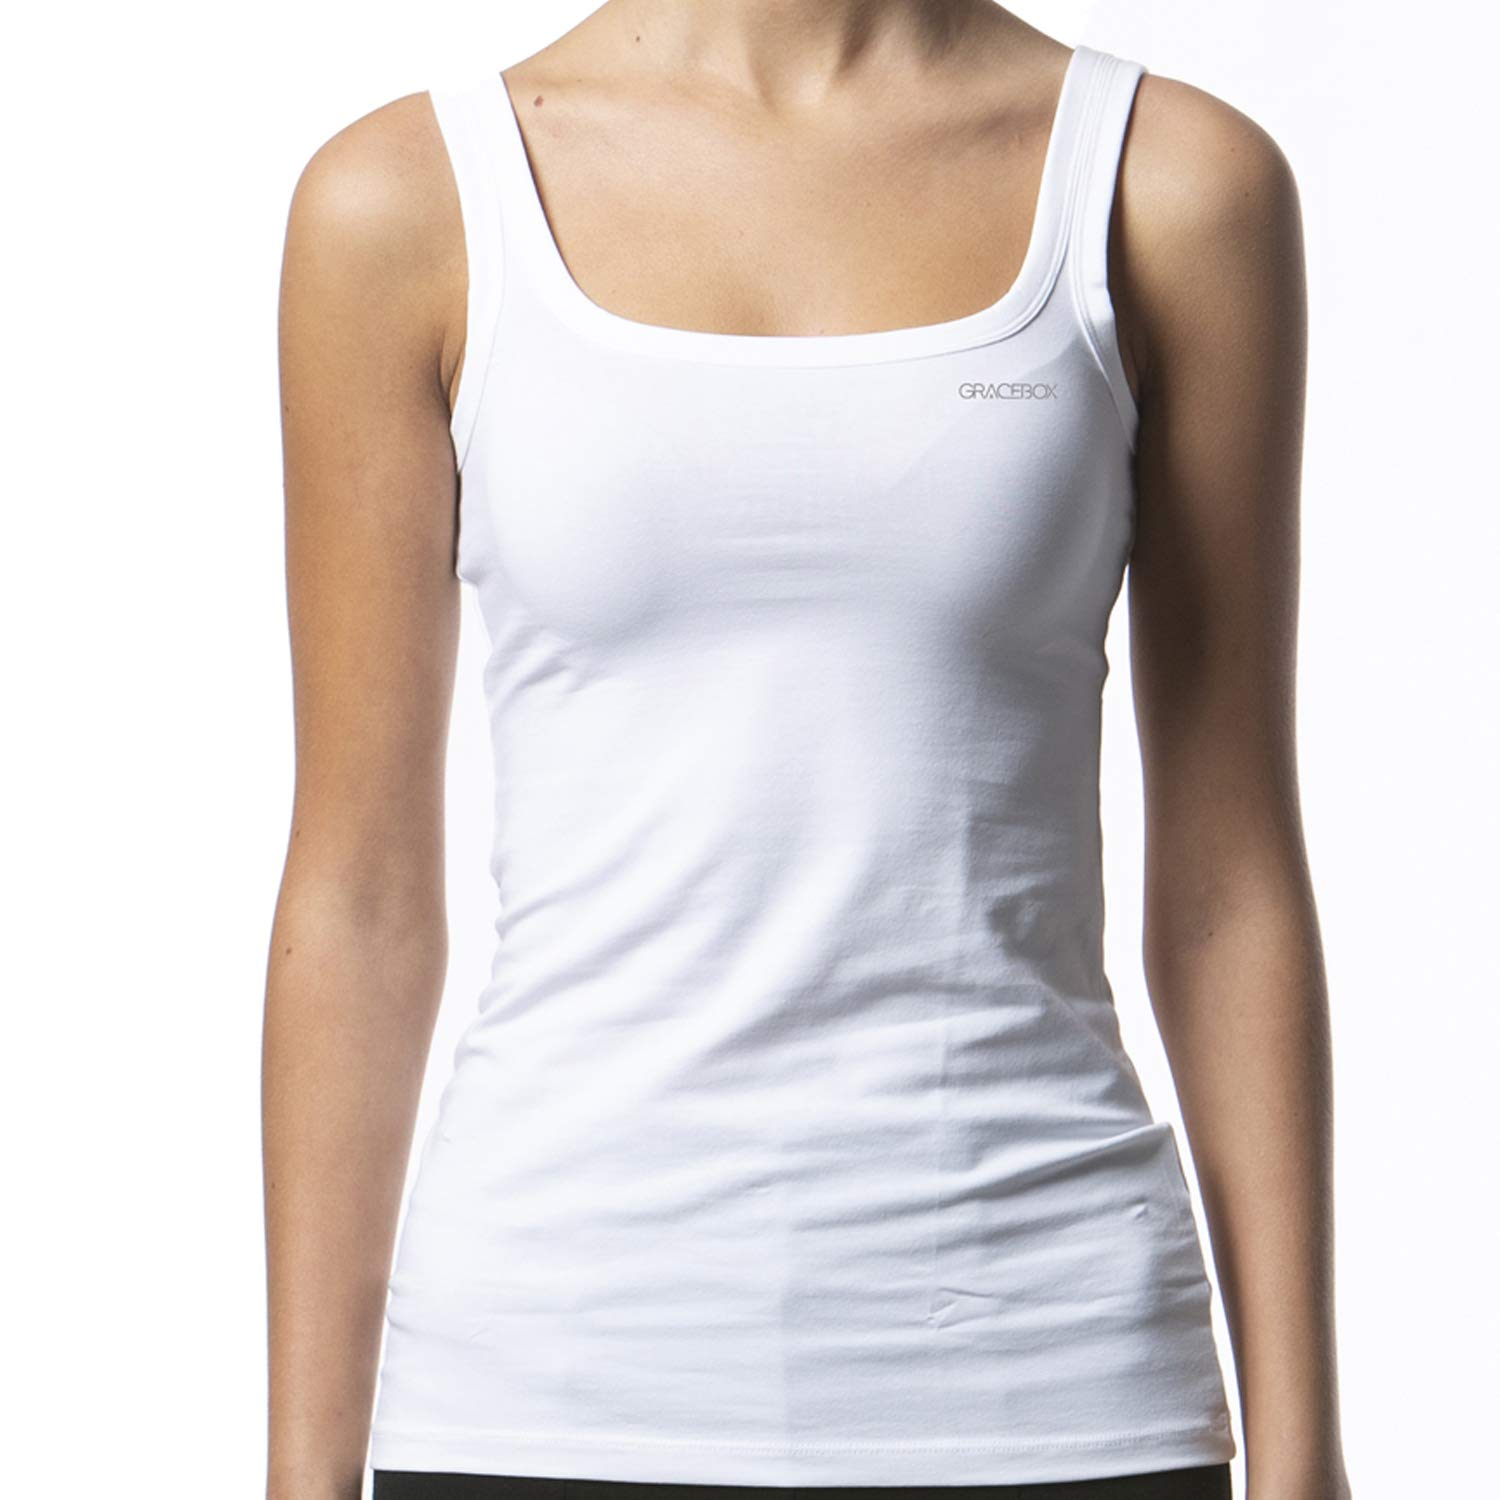 Here is a great yoga tank